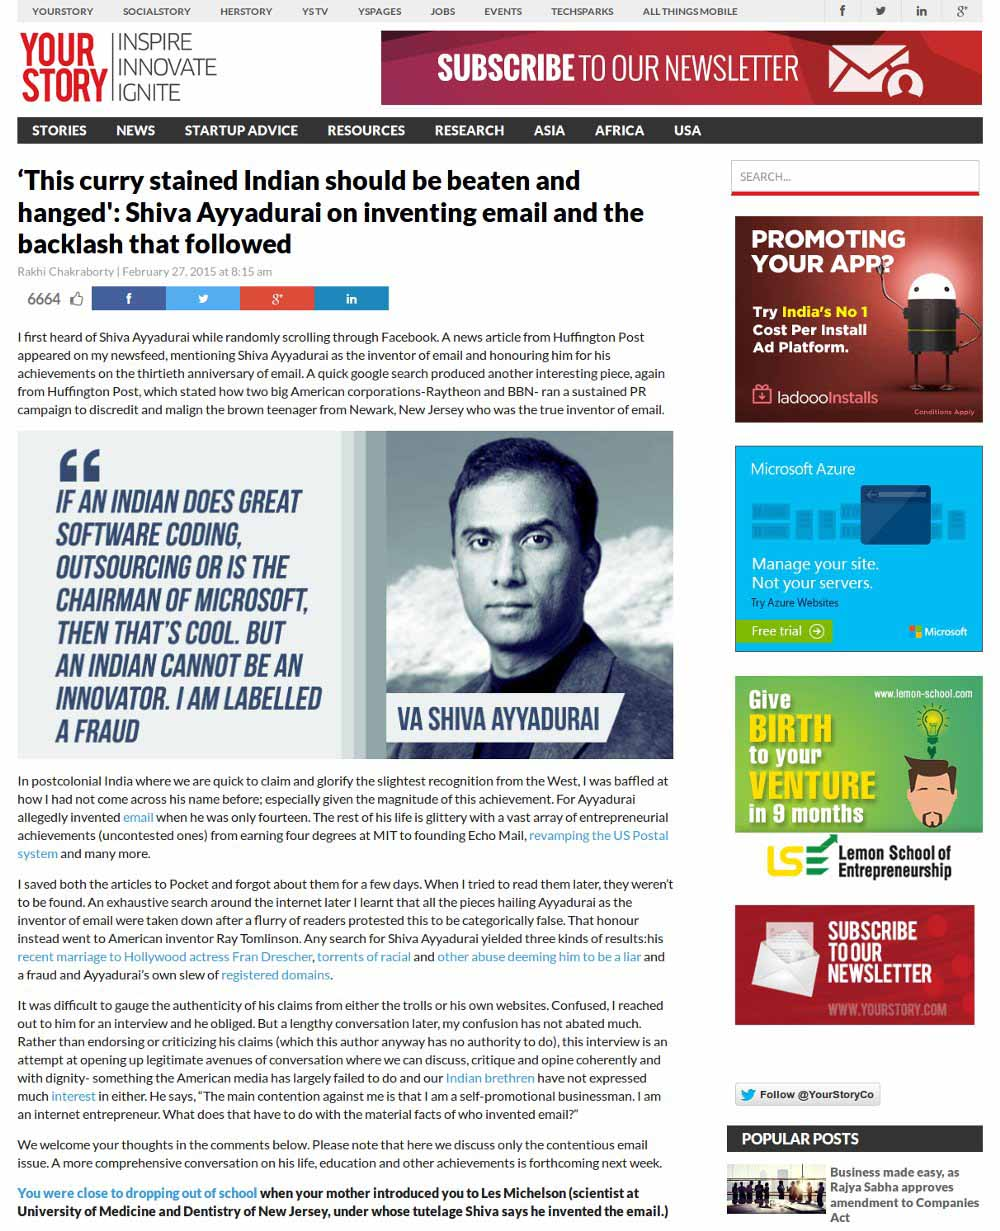 Shiva Ayyadurai On Inventing Email And The Backlash That Followed